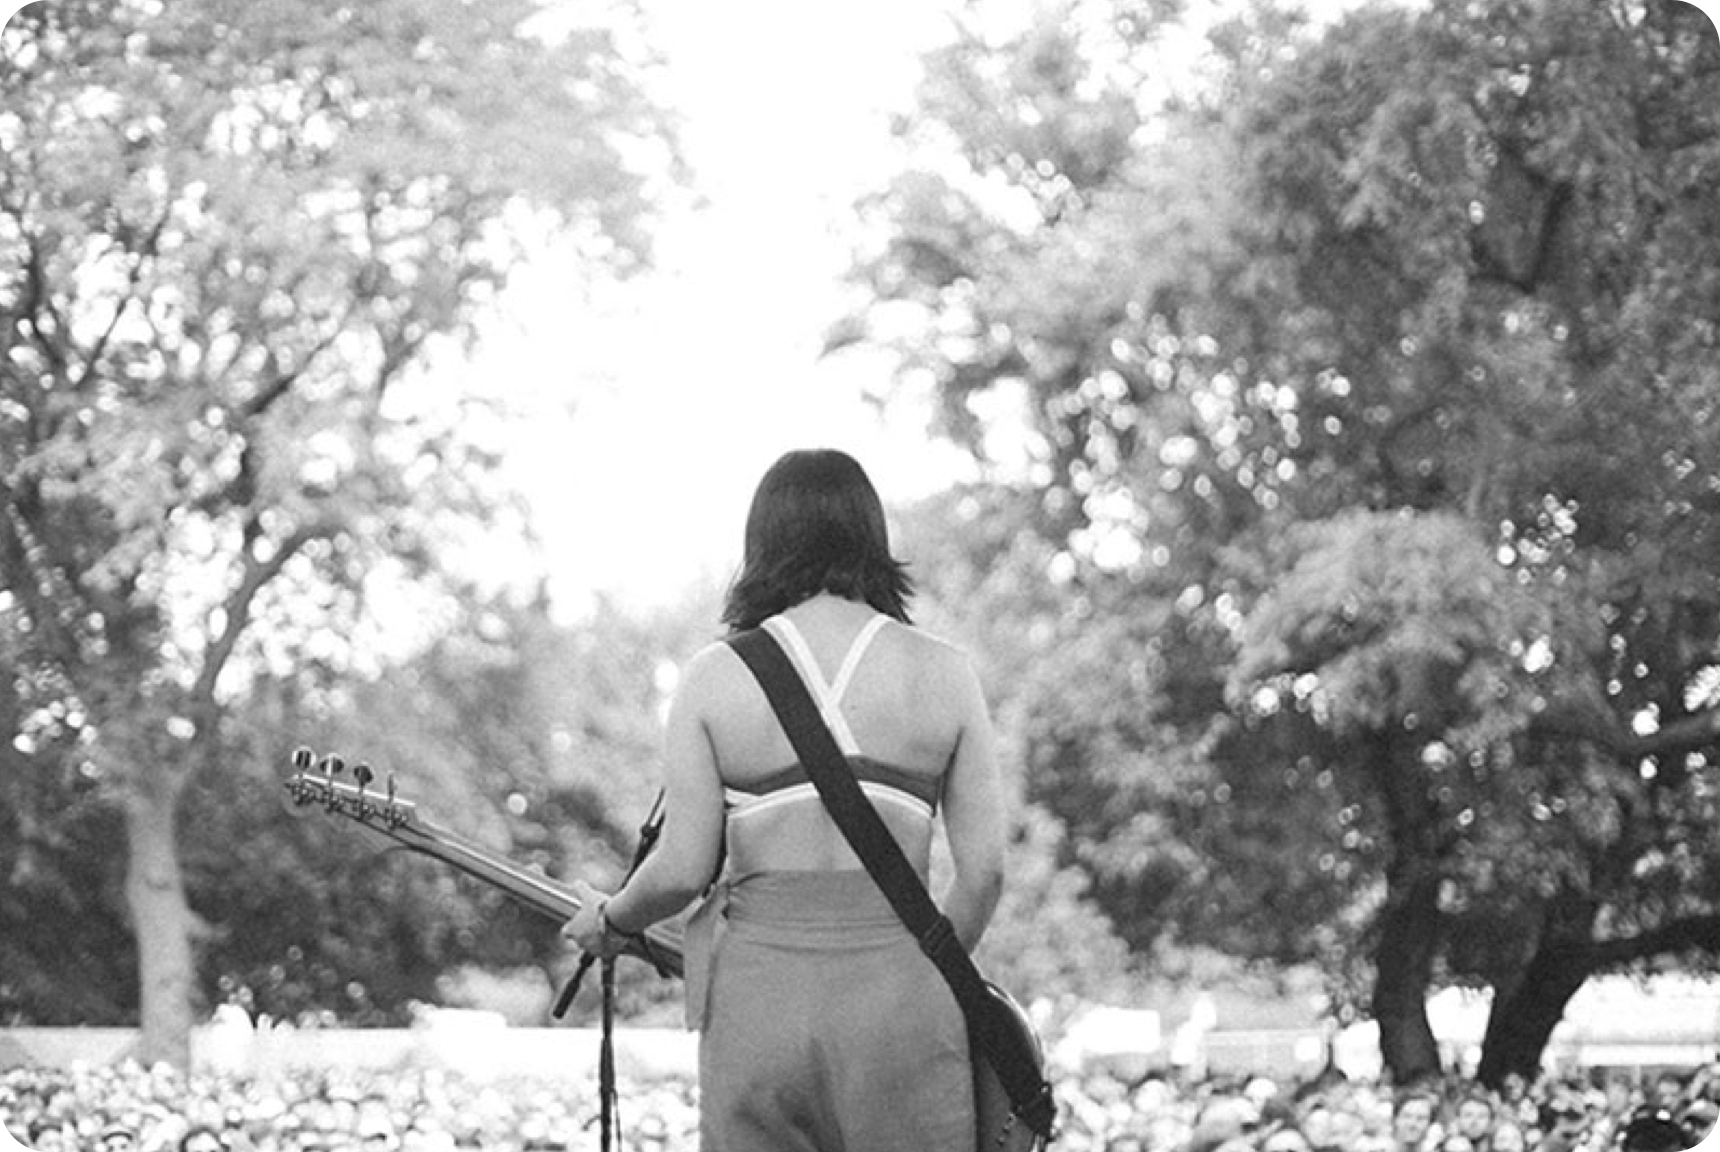 Back view of woman holding guitar overlooking a crowd